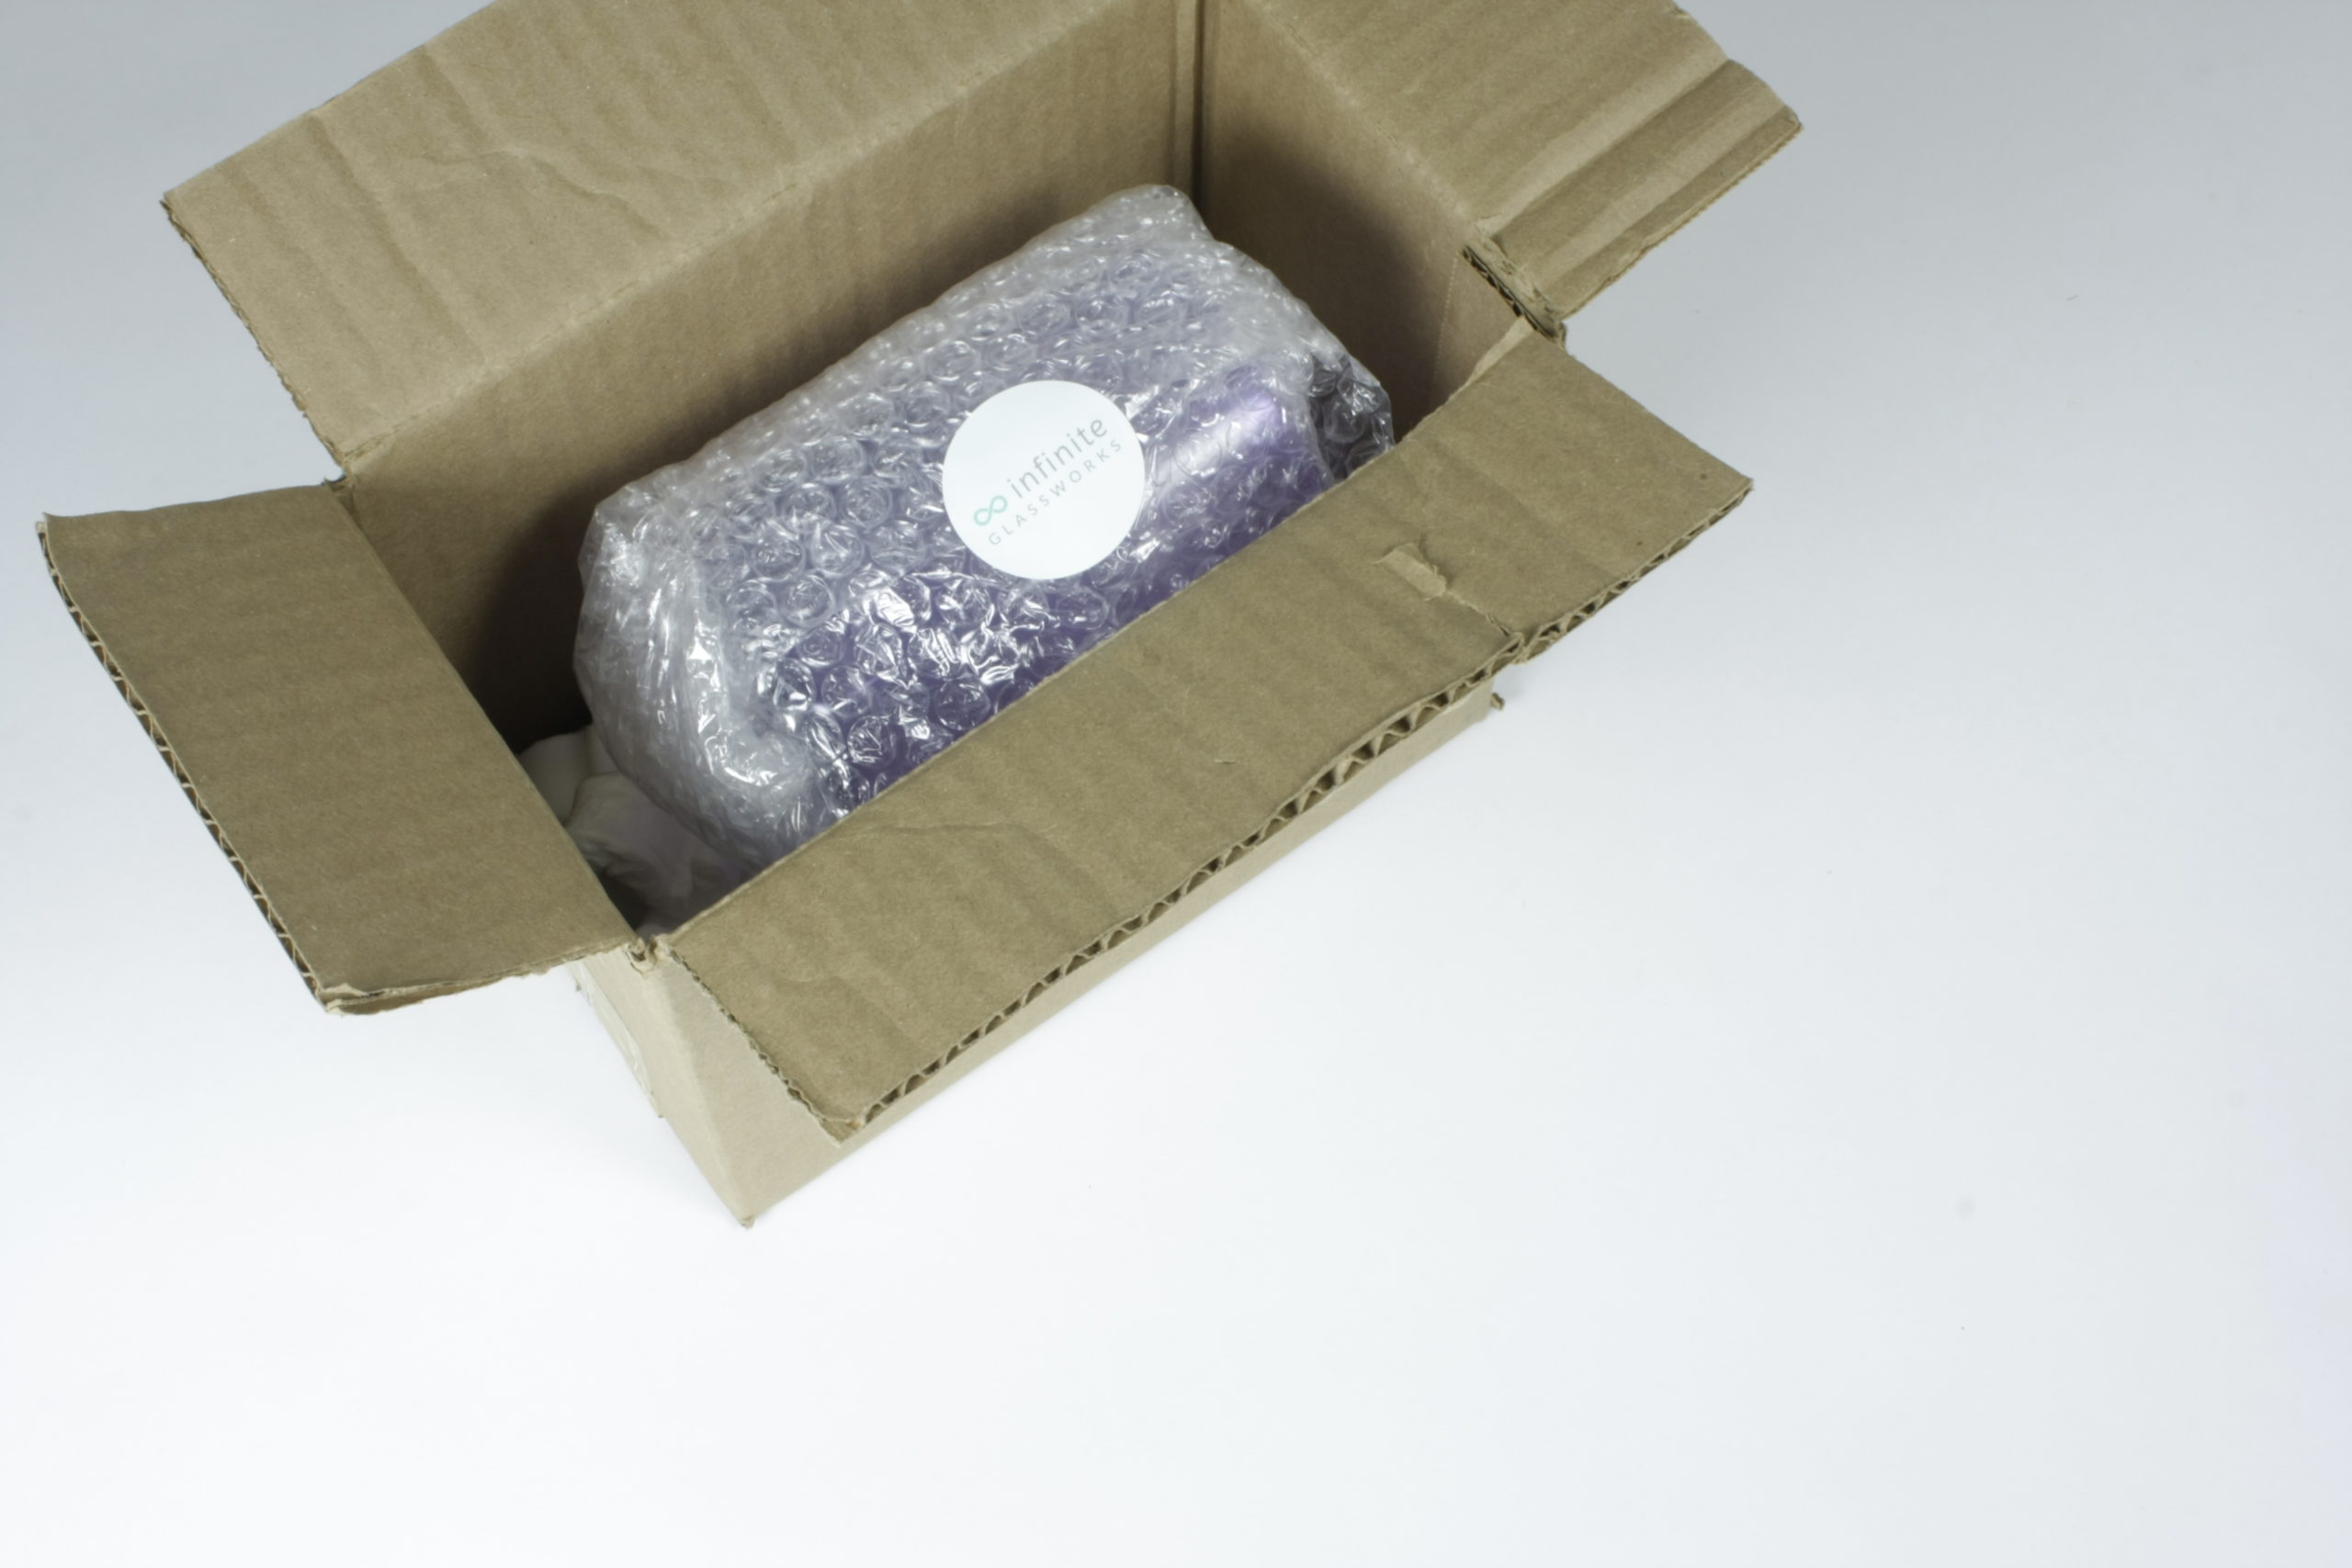 Cardboard Box with Packed Glass